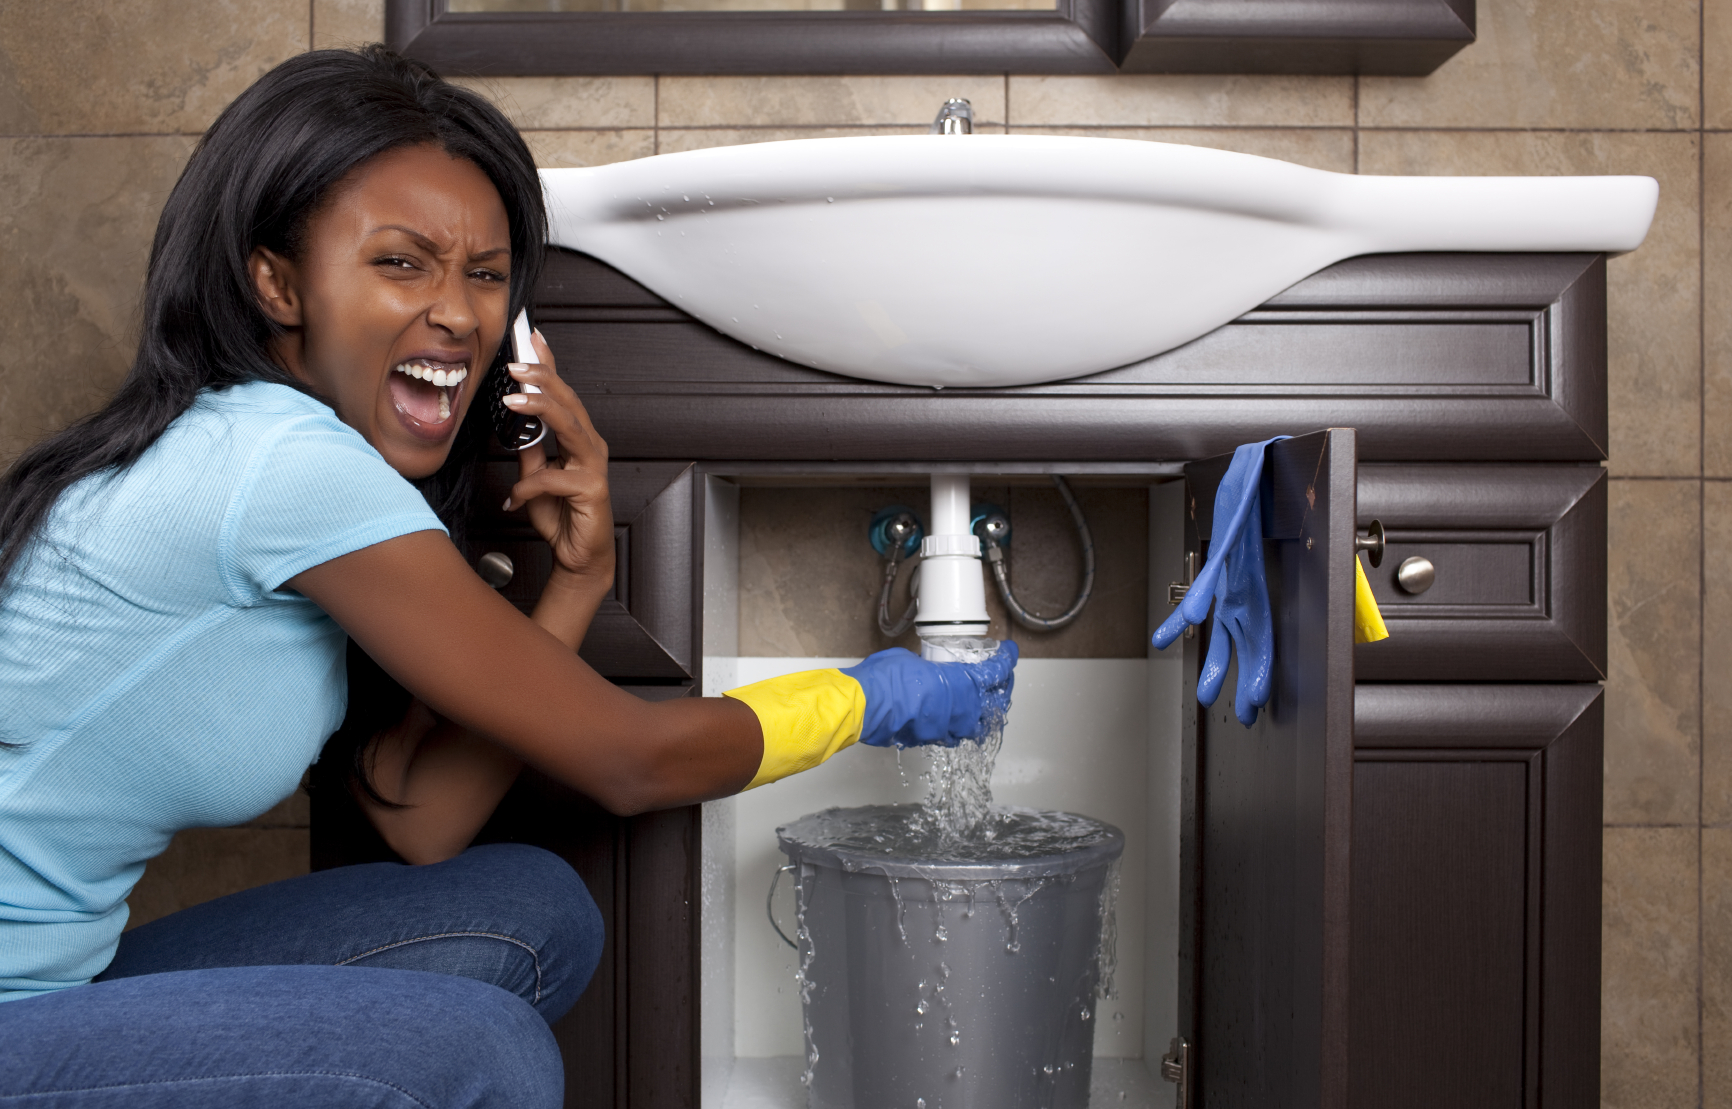 Drain Cleaning before Winter in Lake Orion Michigan